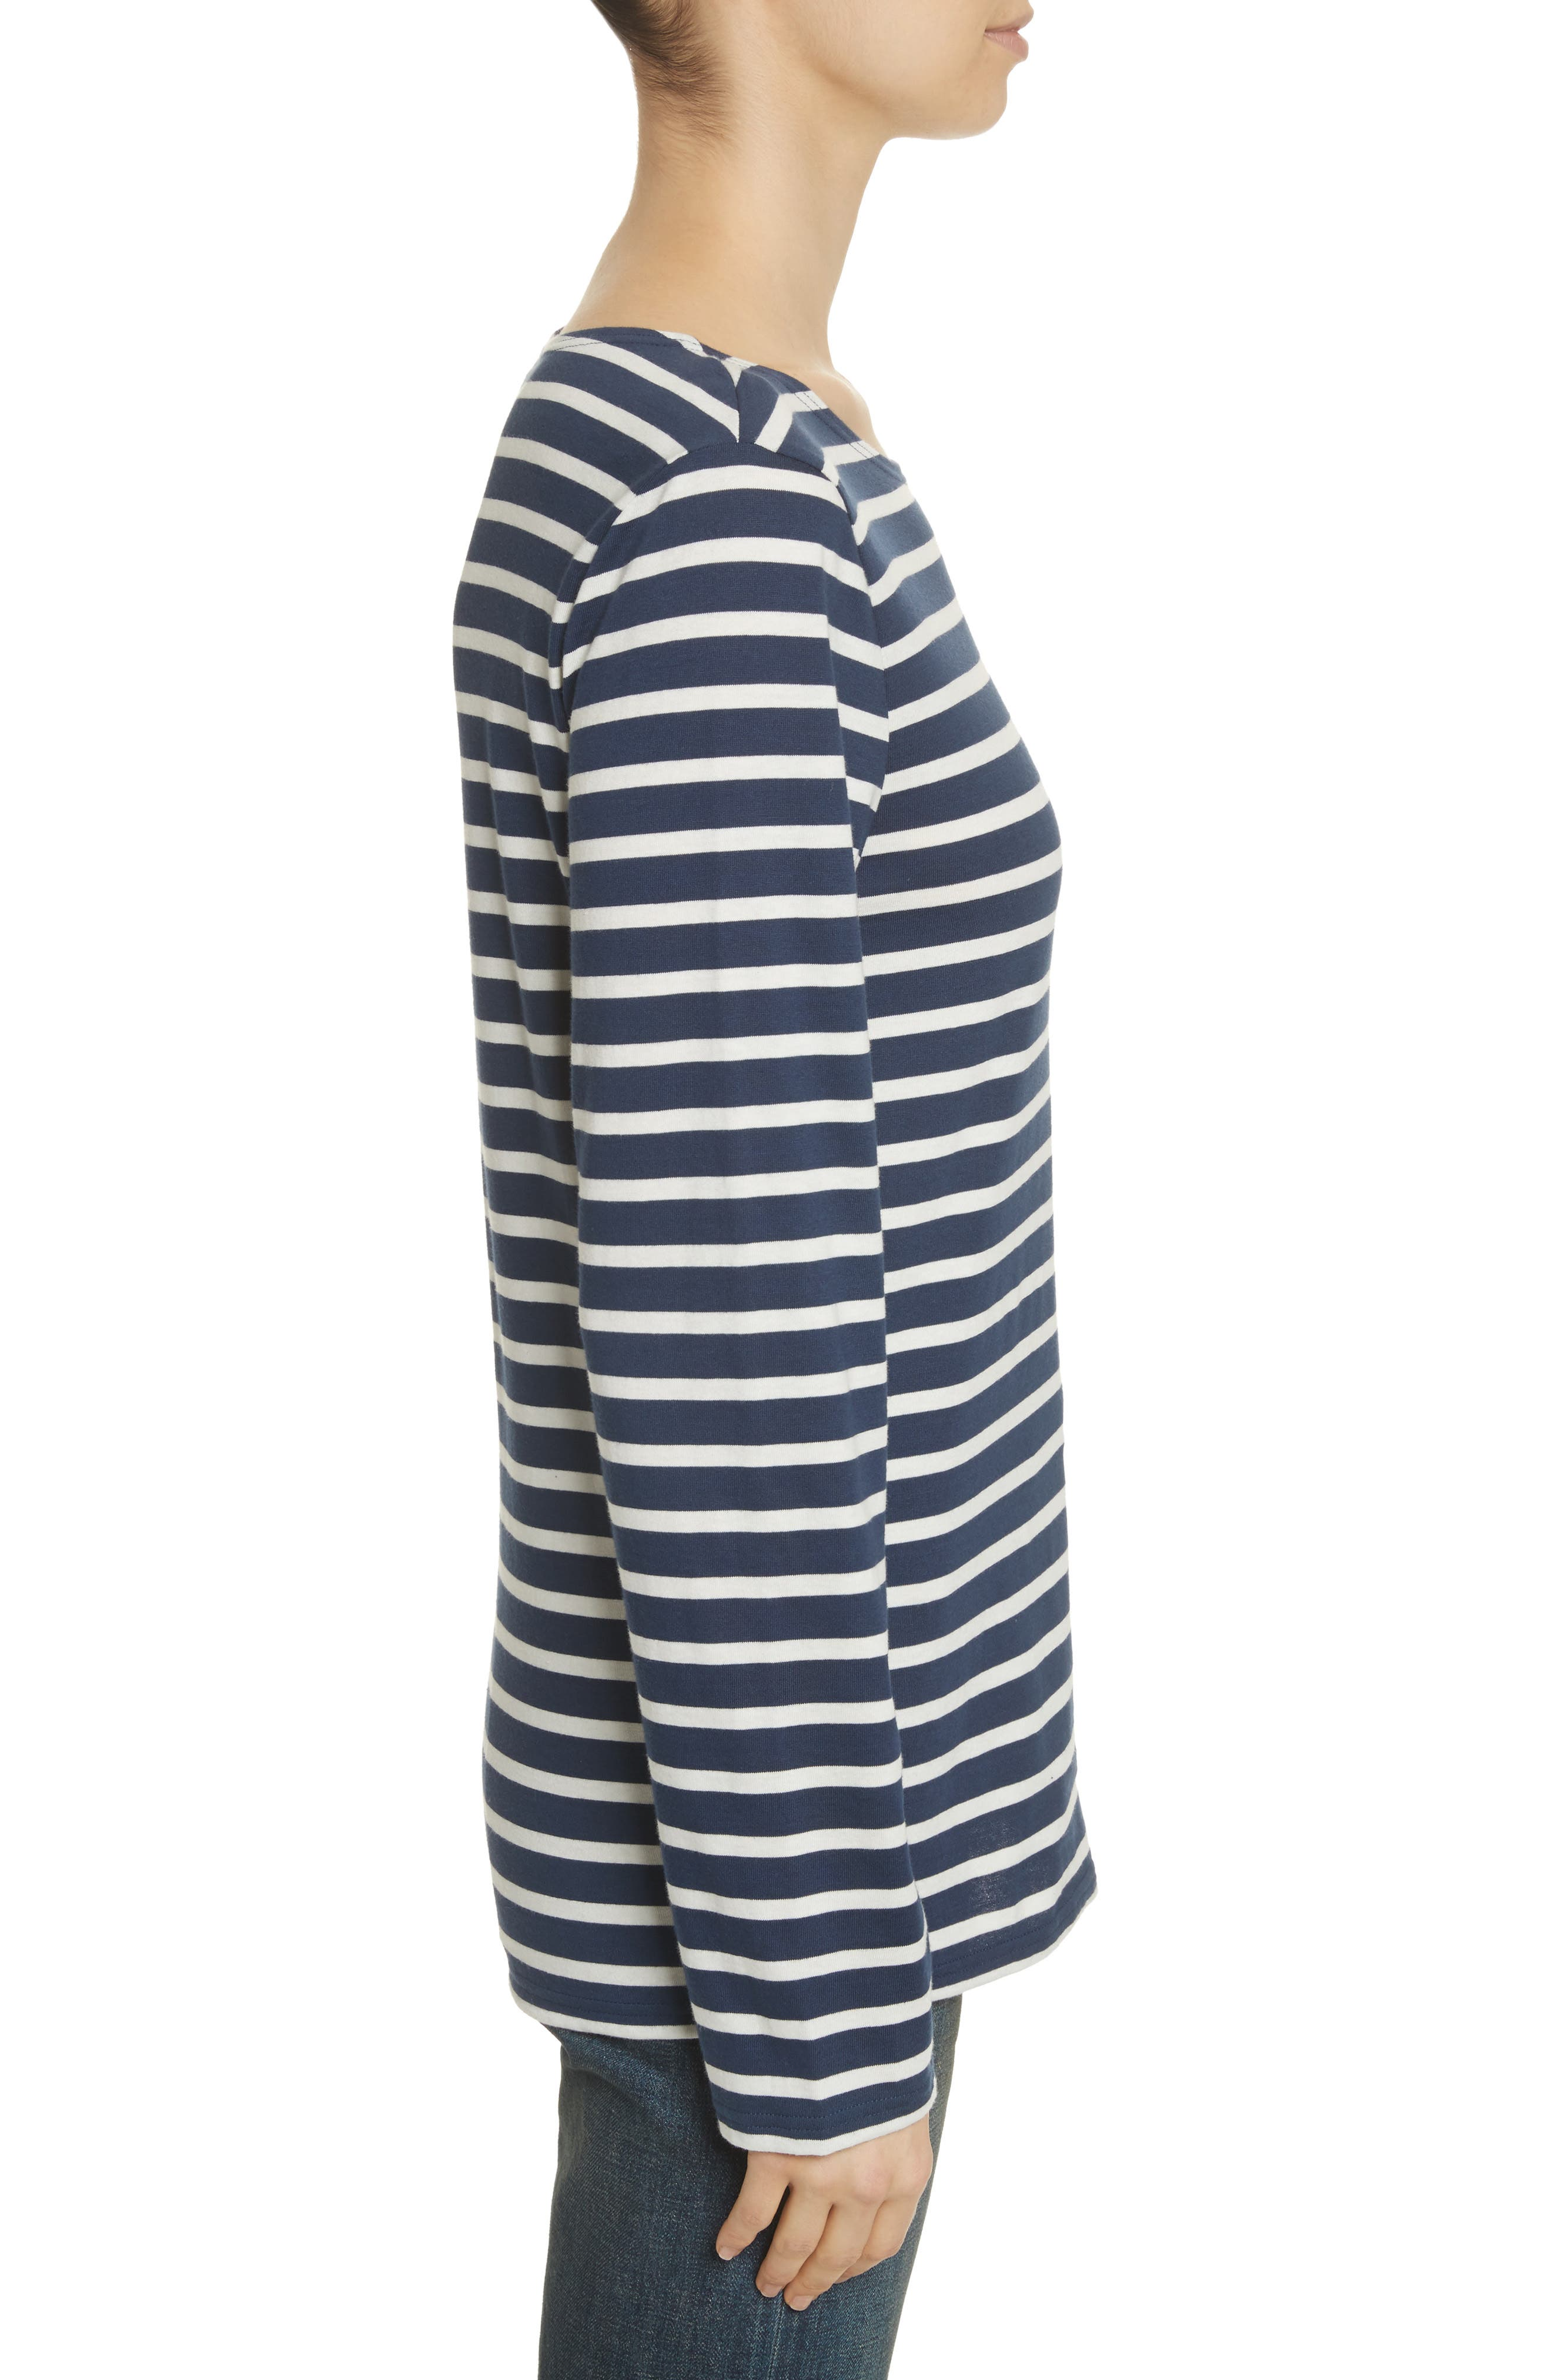 Minquiers Moderne Striped Sailor Shirt,                             Alternate thumbnail 4, color,                             NAVY/ OFF WHITE